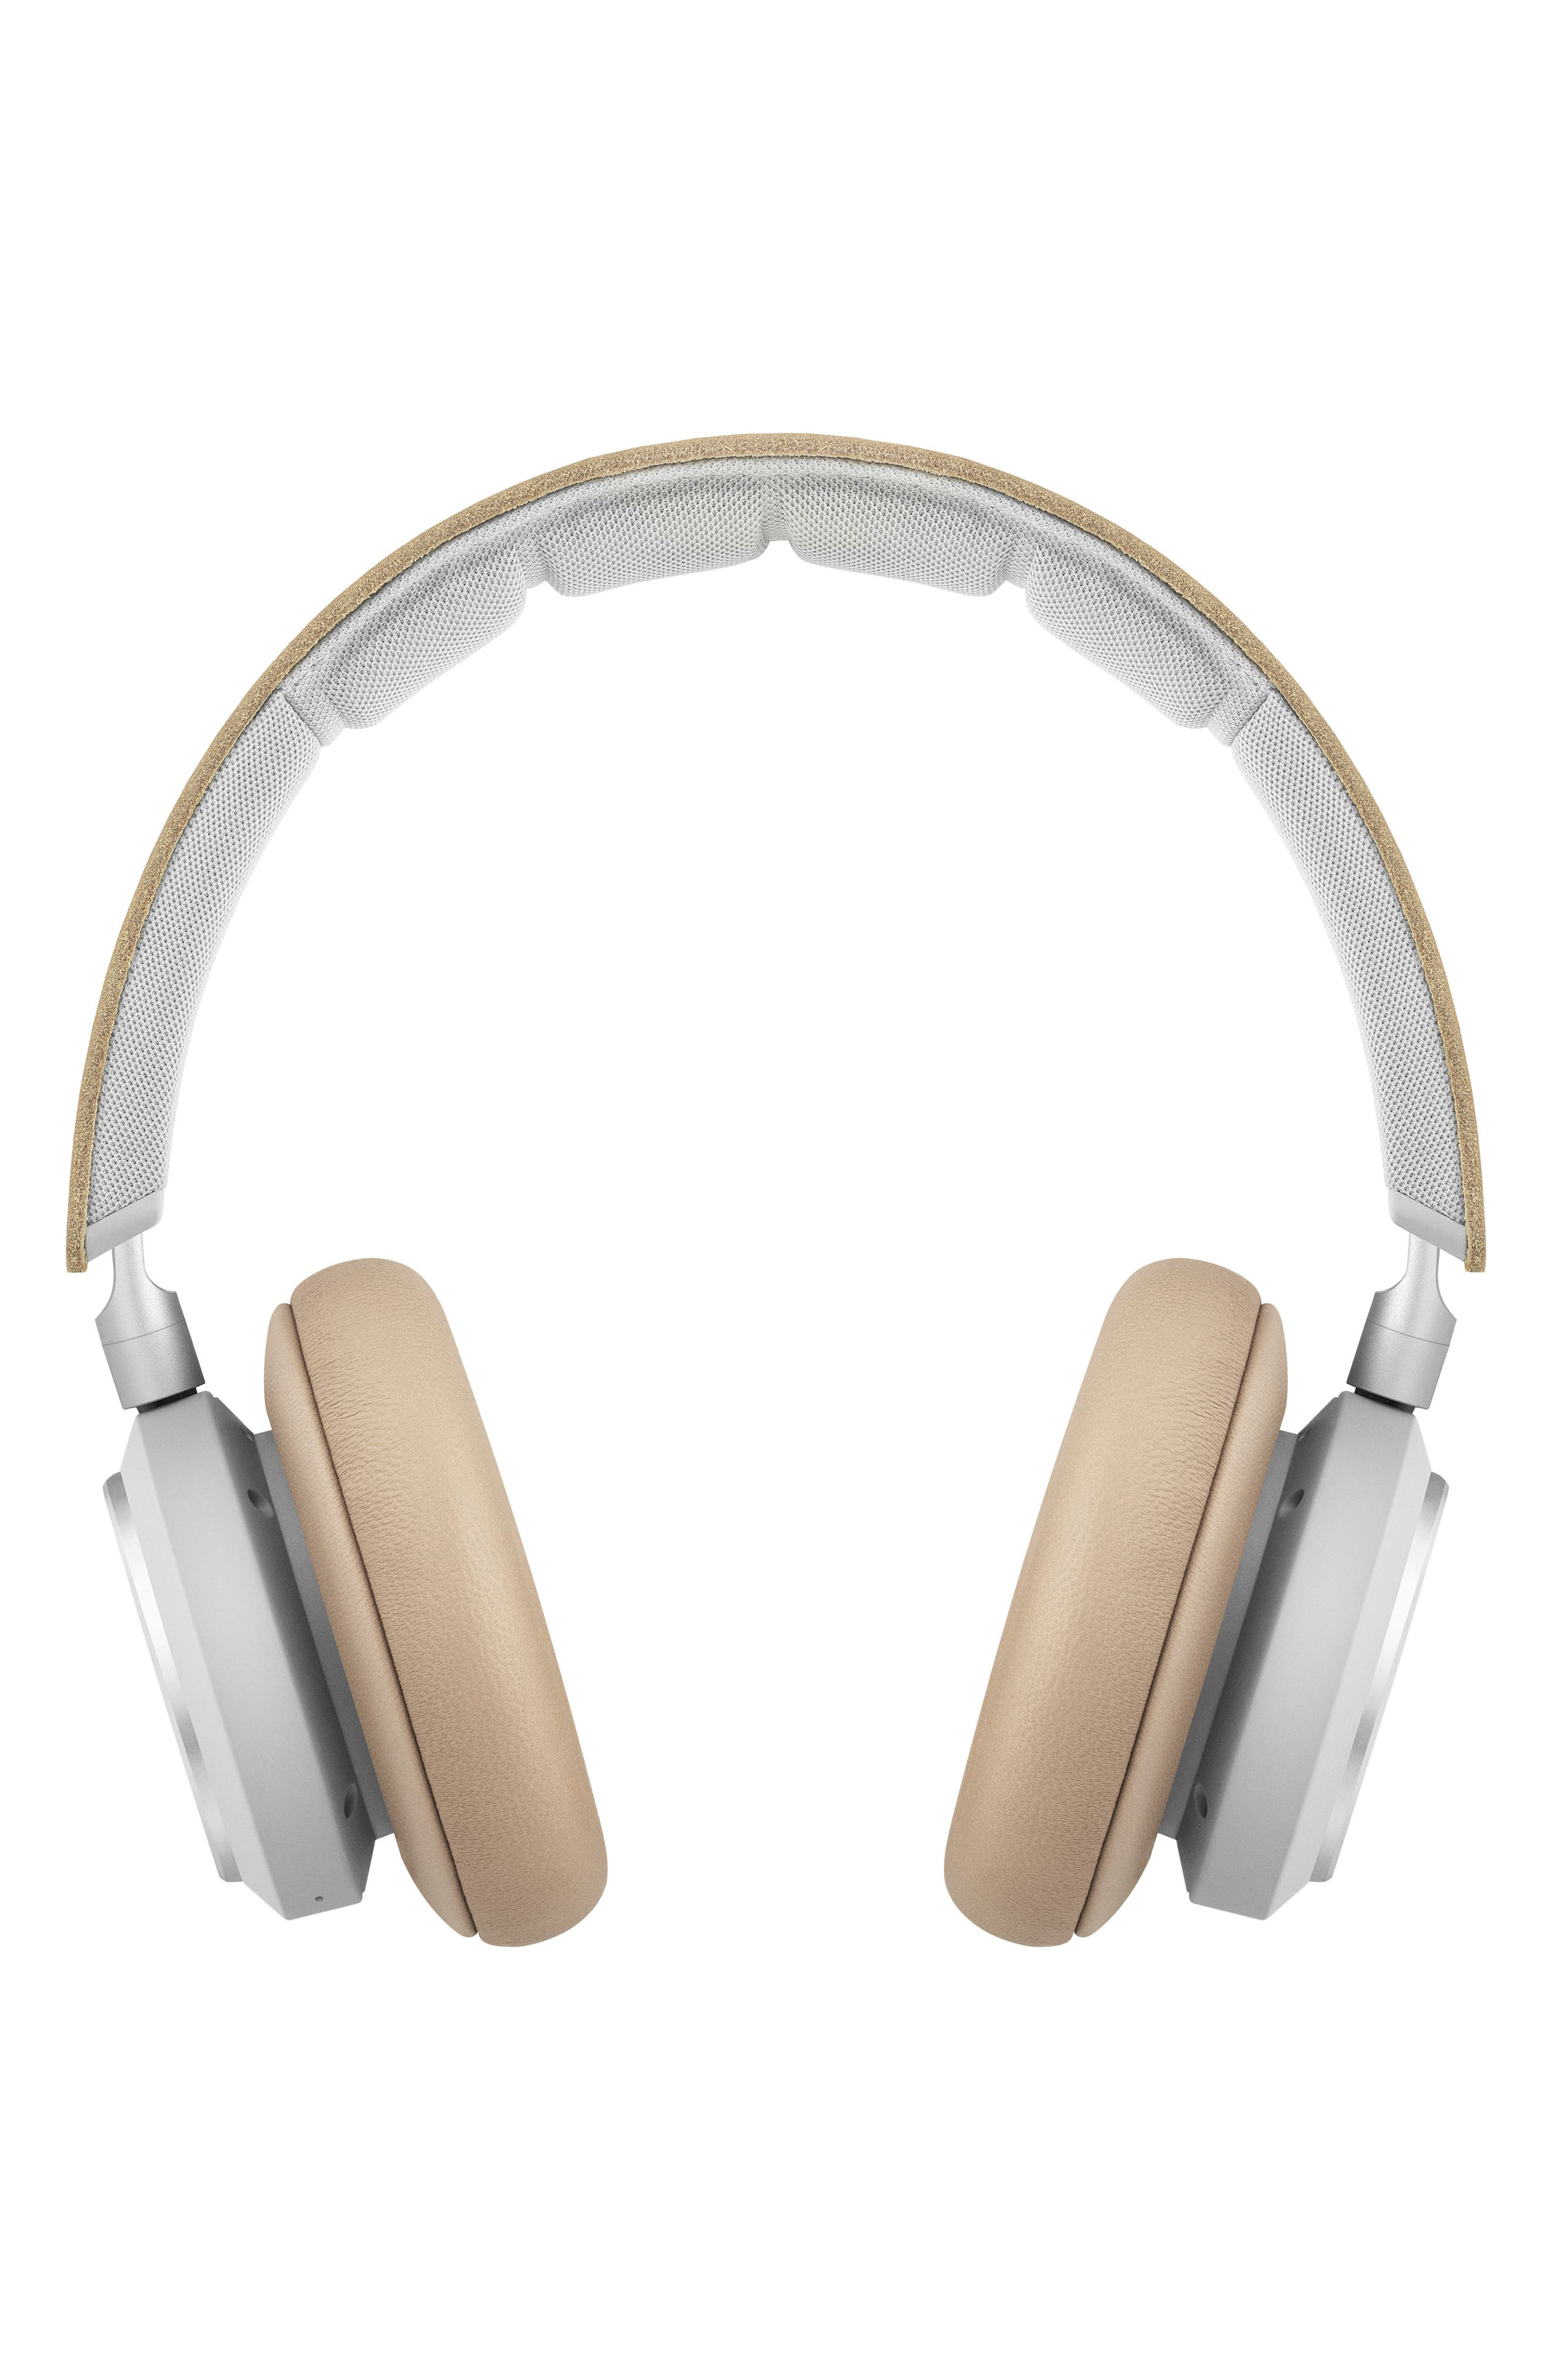 Beoplay H9I Noise Canceling Bluetooth<sup>®</sup> Headphones,                             Alternate thumbnail 2, color,                             NATURAL